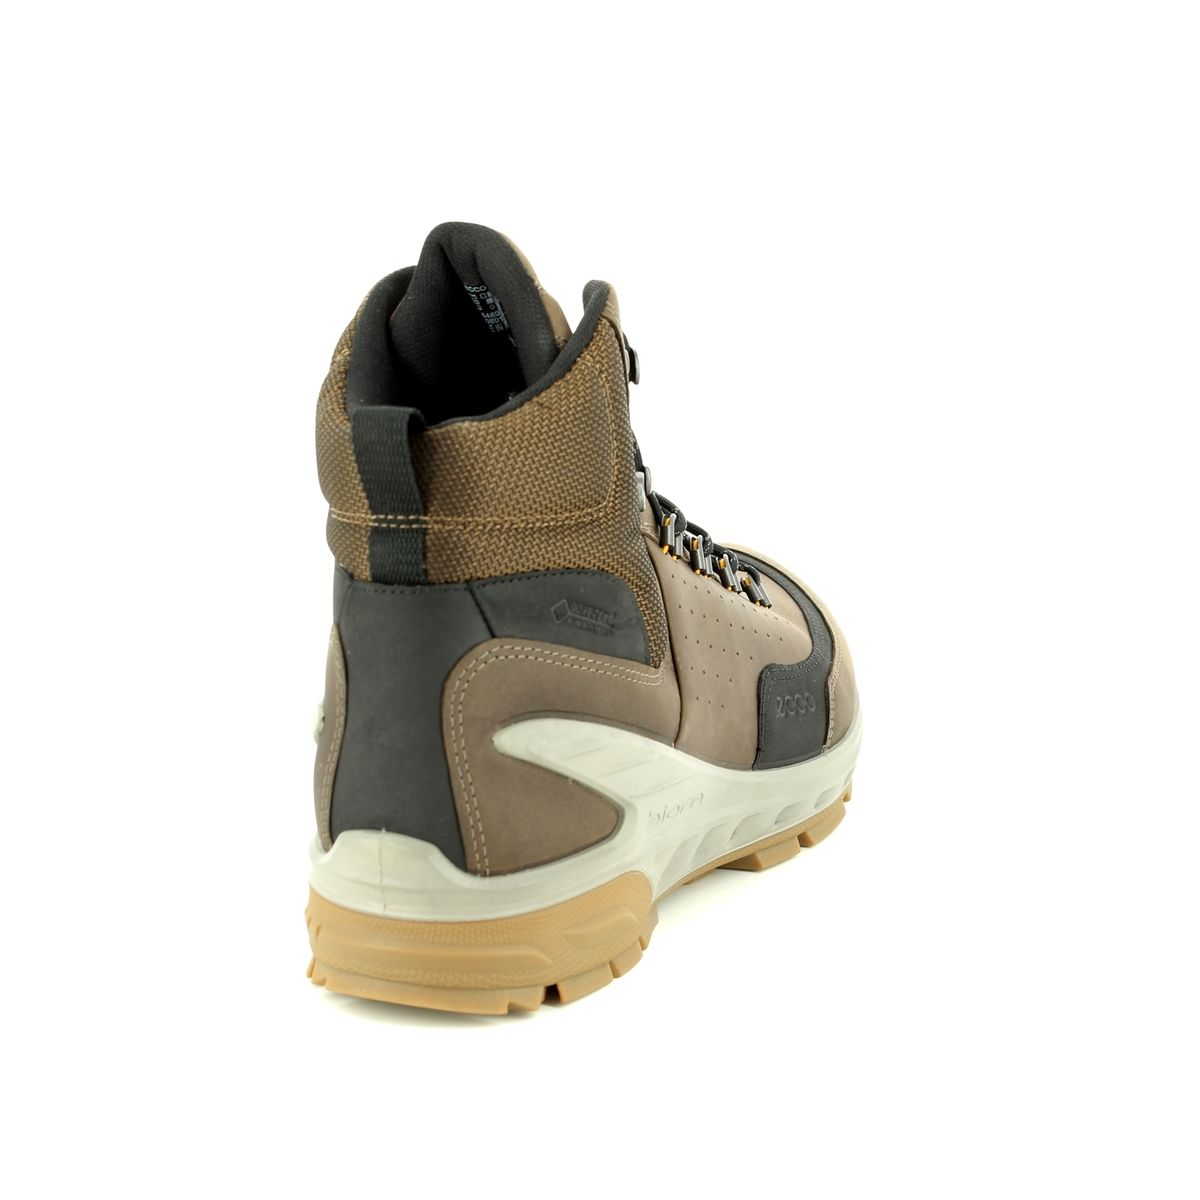 1a53642a0 854604/51742 Biom Venture Tr Gore-tex at Begg Shoes & Bags